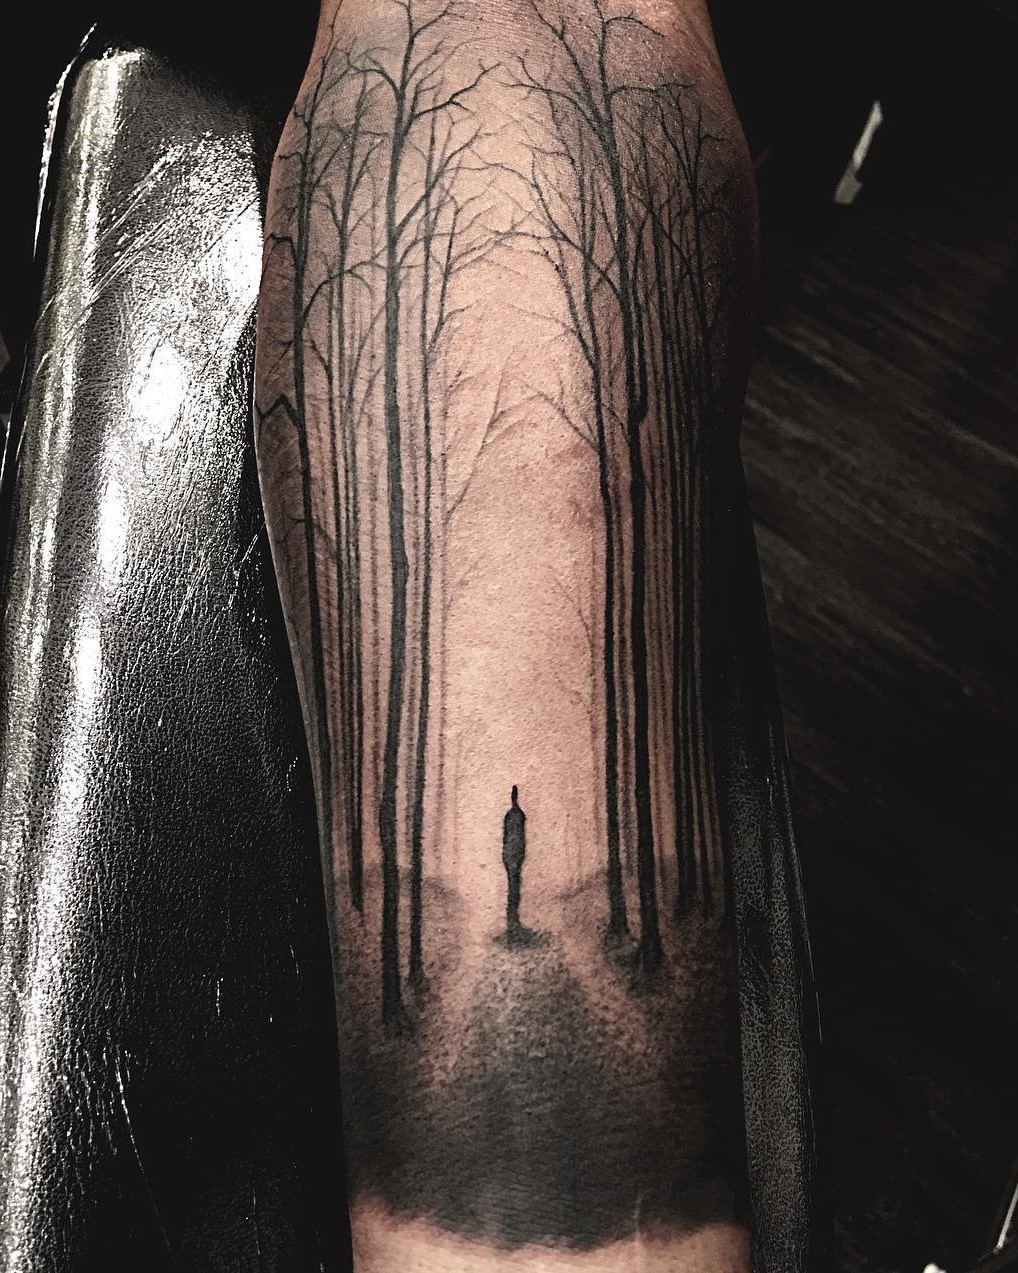 Shadow of a Person standing in the light of a forest black and grey tattoo done by Tattoo Artist Alan Lott at Sacred Mandala Studio in Durham, NC.